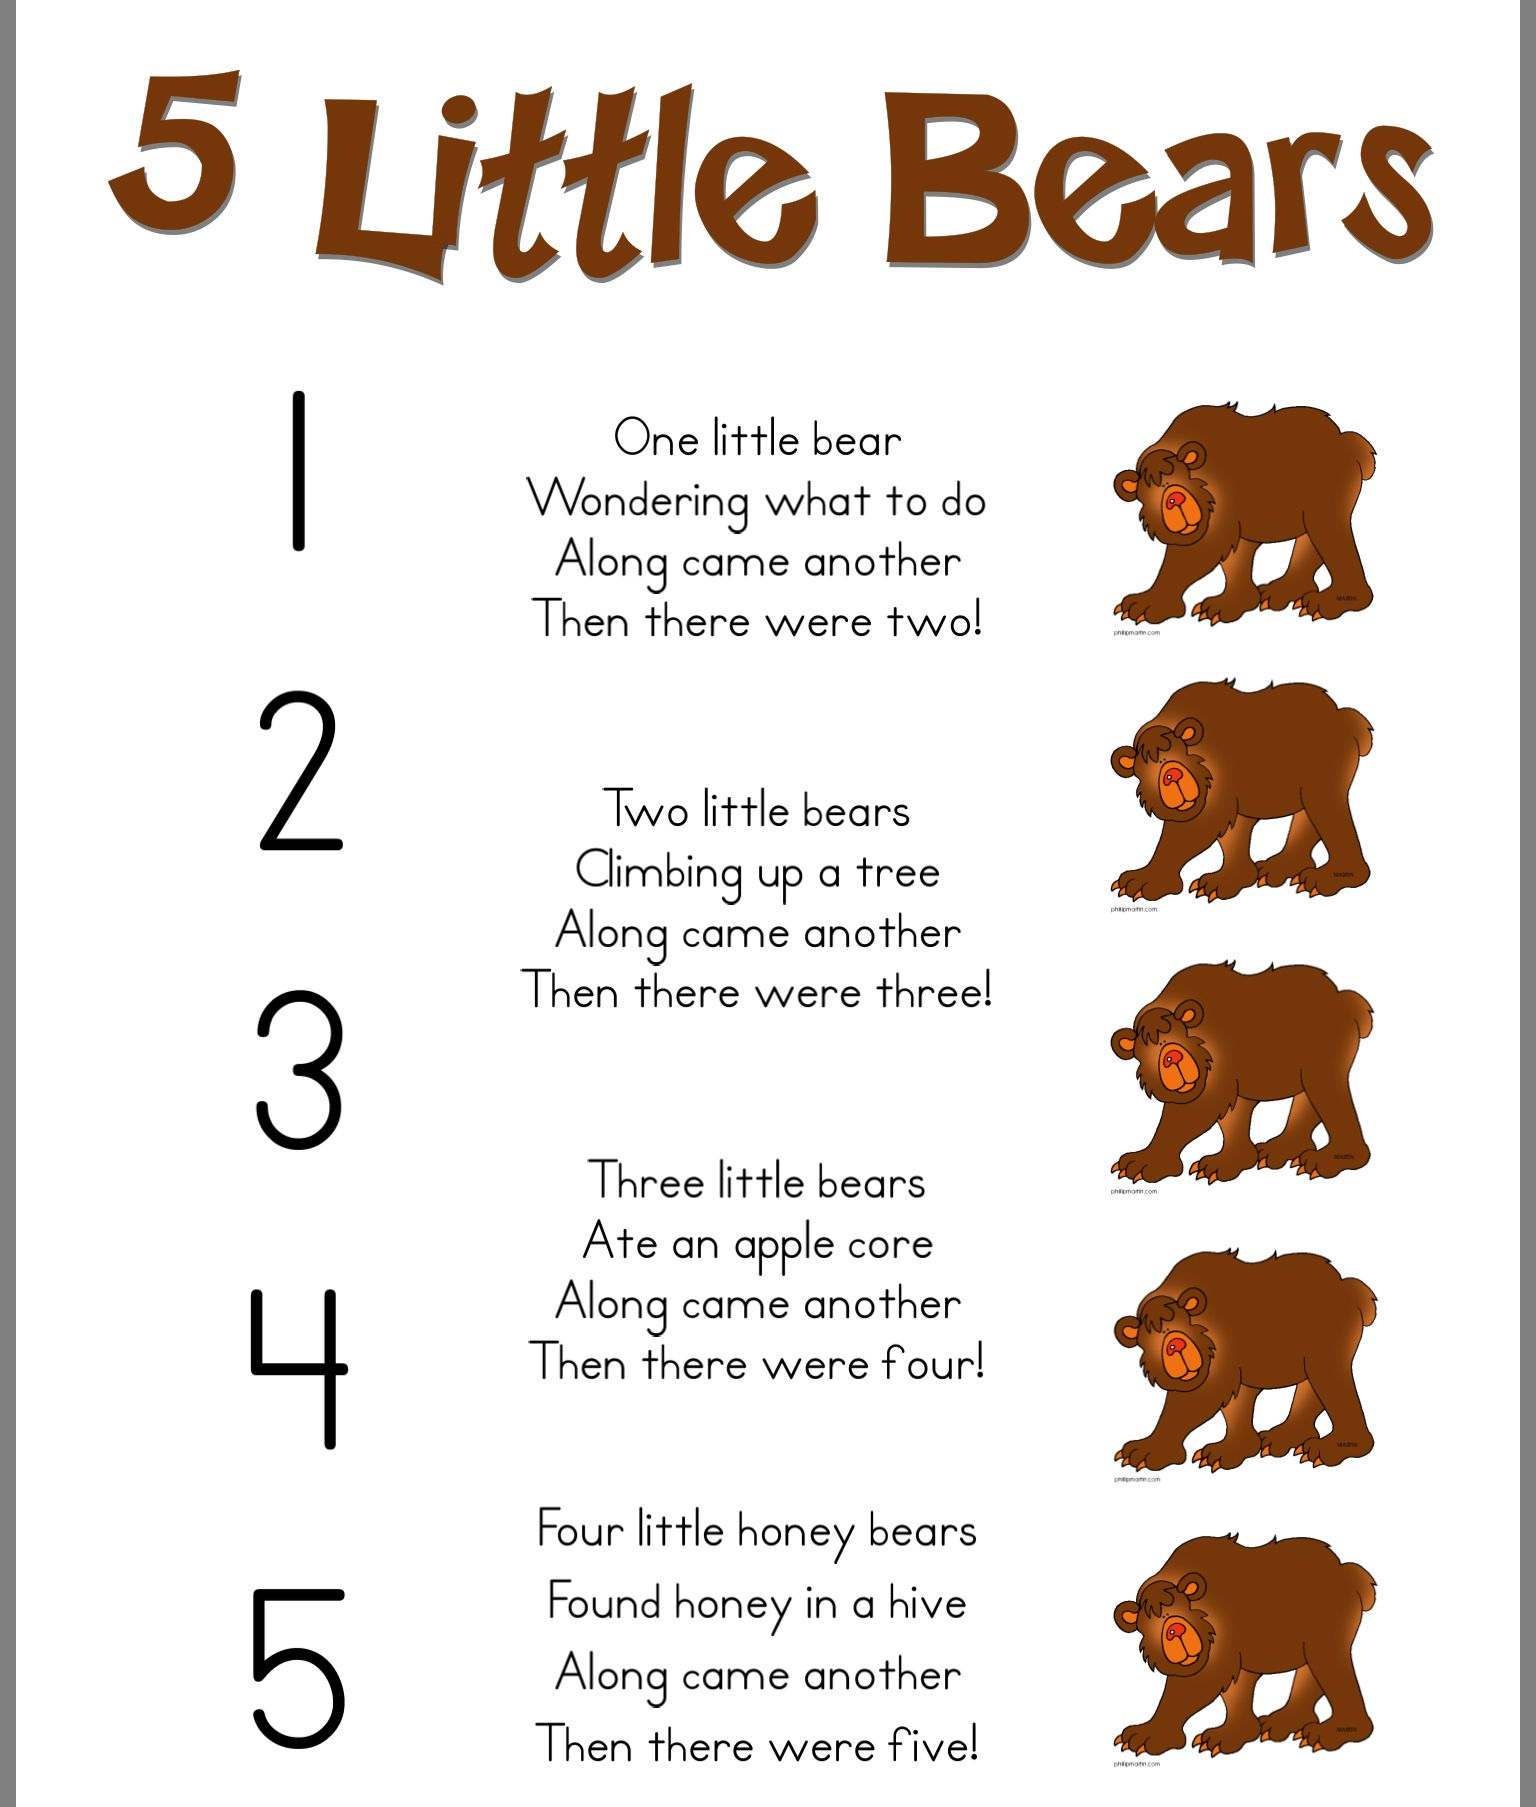 5 Little Bears Poem